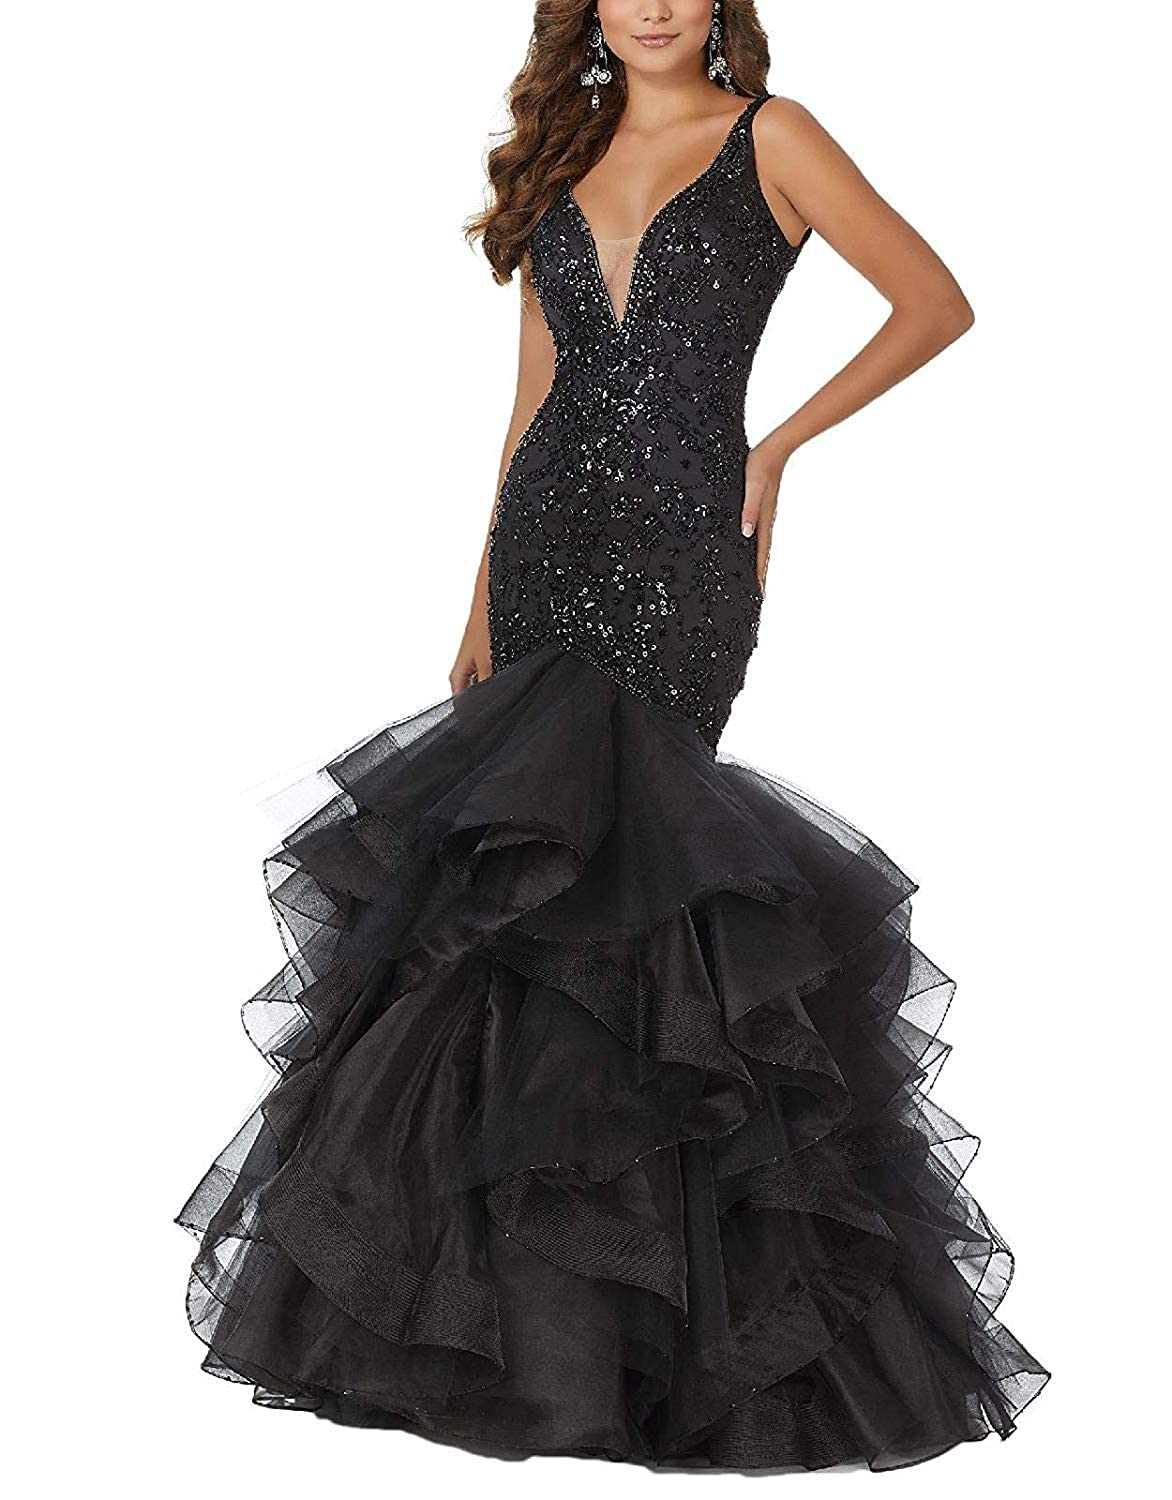 Black PearlBridal Women's Beaded Sequins Mermaid Lace Long Prom Dresses Ruffles Evening Ball Gowns